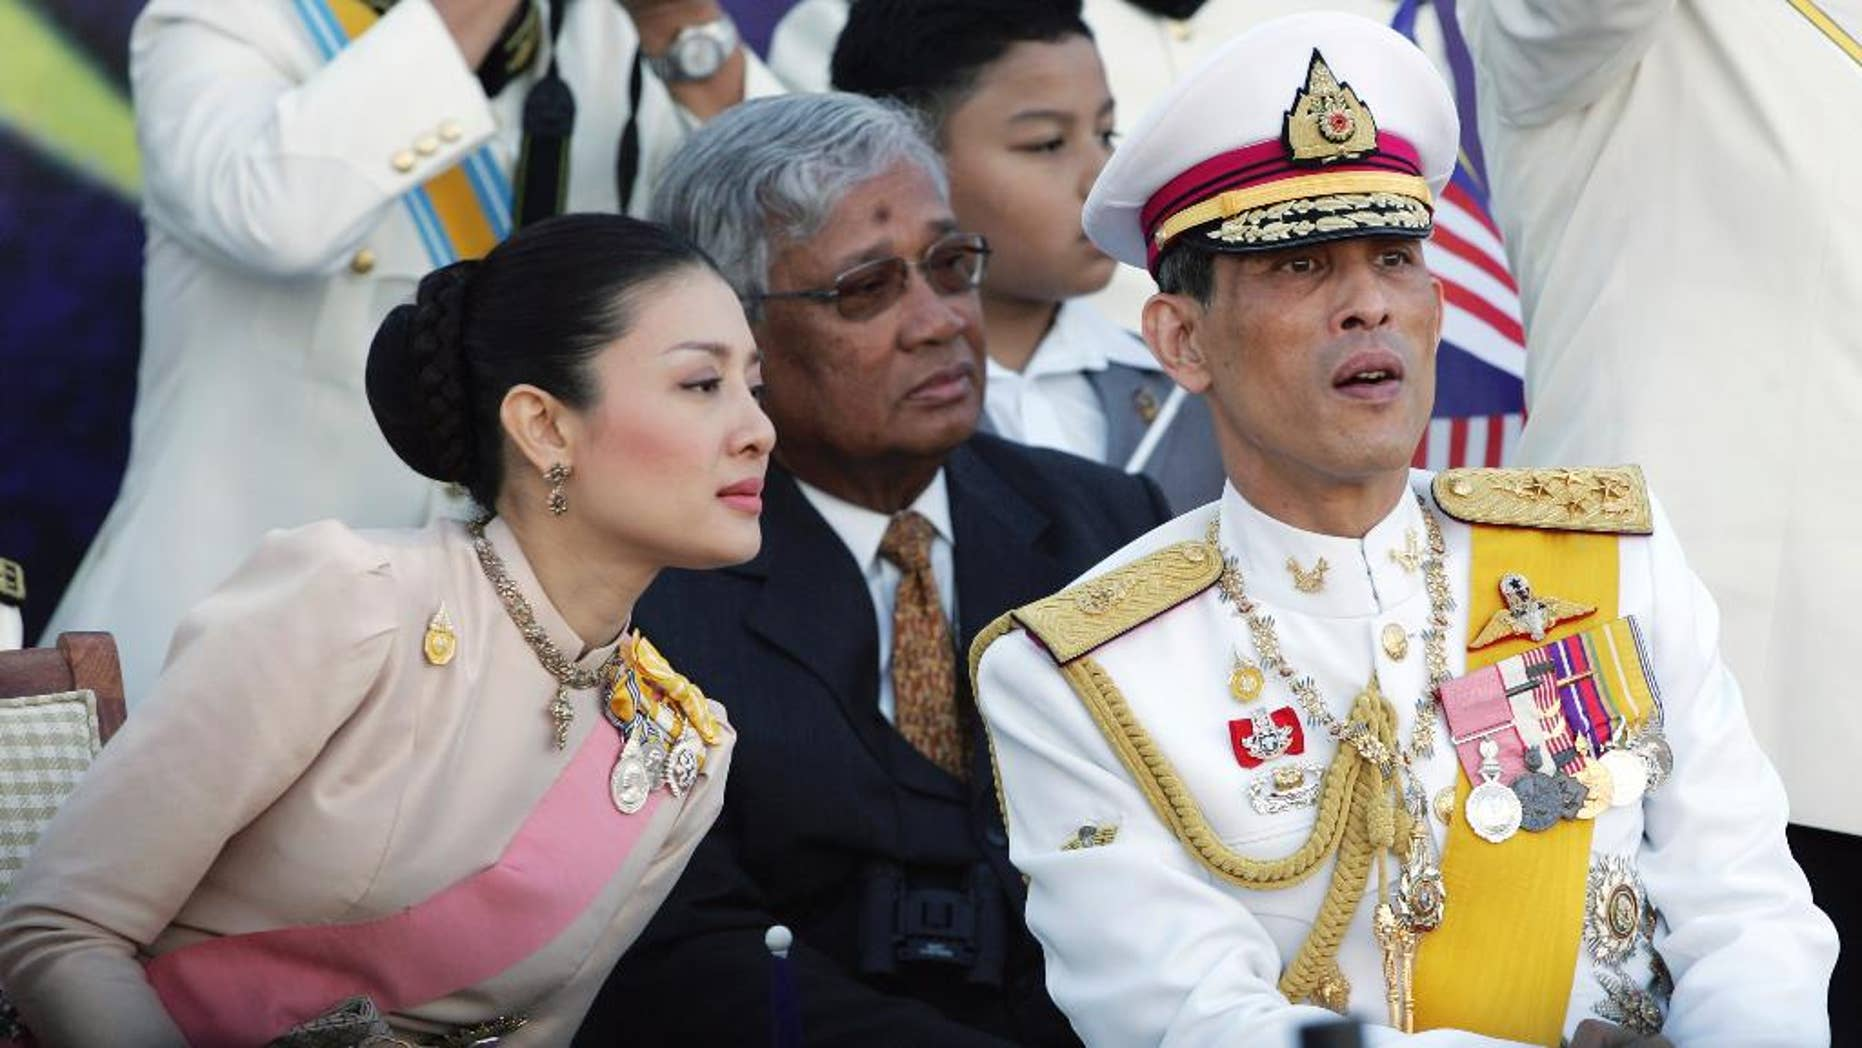 """FILE - In this Aug. 31, 2007 file photo, Thailand's Crown Prince Vajiralongkorn, right, chats with his royal consort Princess Srirasm as they watch a parade at the historic Merdeka square in downtown Kuala Lumpur,  Malaysia. Thailand's Crown Prince Vajiralongkorn has asked the government to strip his wife's family of their royally issued surname, the latest development in a high-profile crackdown that involves senior members of the police force. The move came after at least three of Princess Srirasm's relatives were arrested as part of the probe. In a letter dated Friday, Nov. 28, 2014 but released over the weekend, the crown prince ordered the """"cancellation of the royally bestowed family name 'Akrapongpreecha,'"""" which was issued after the pair married in 2001. (AP Photo/Vincent Thian, File)"""